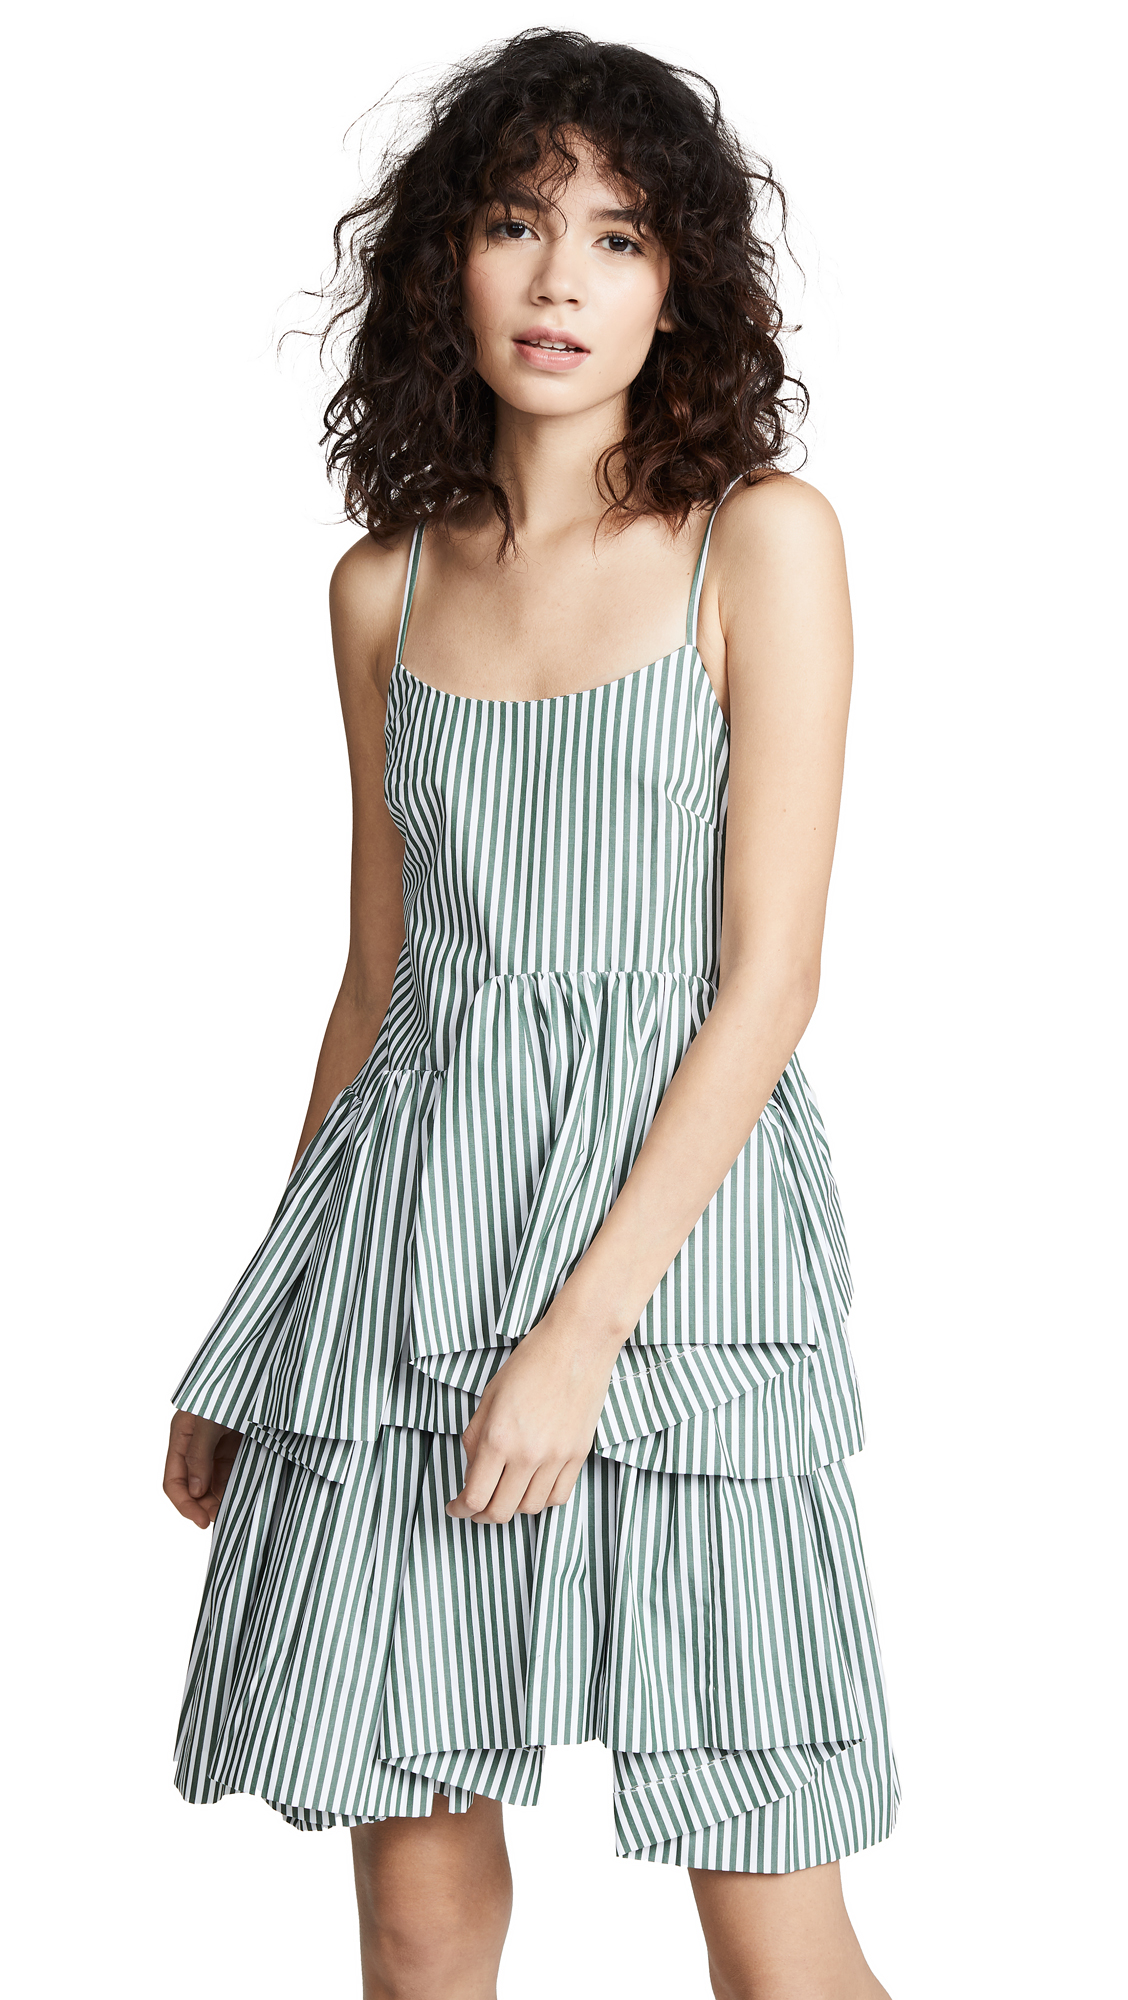 JOURDEN Striped Asymmetric Dress in Olive/White